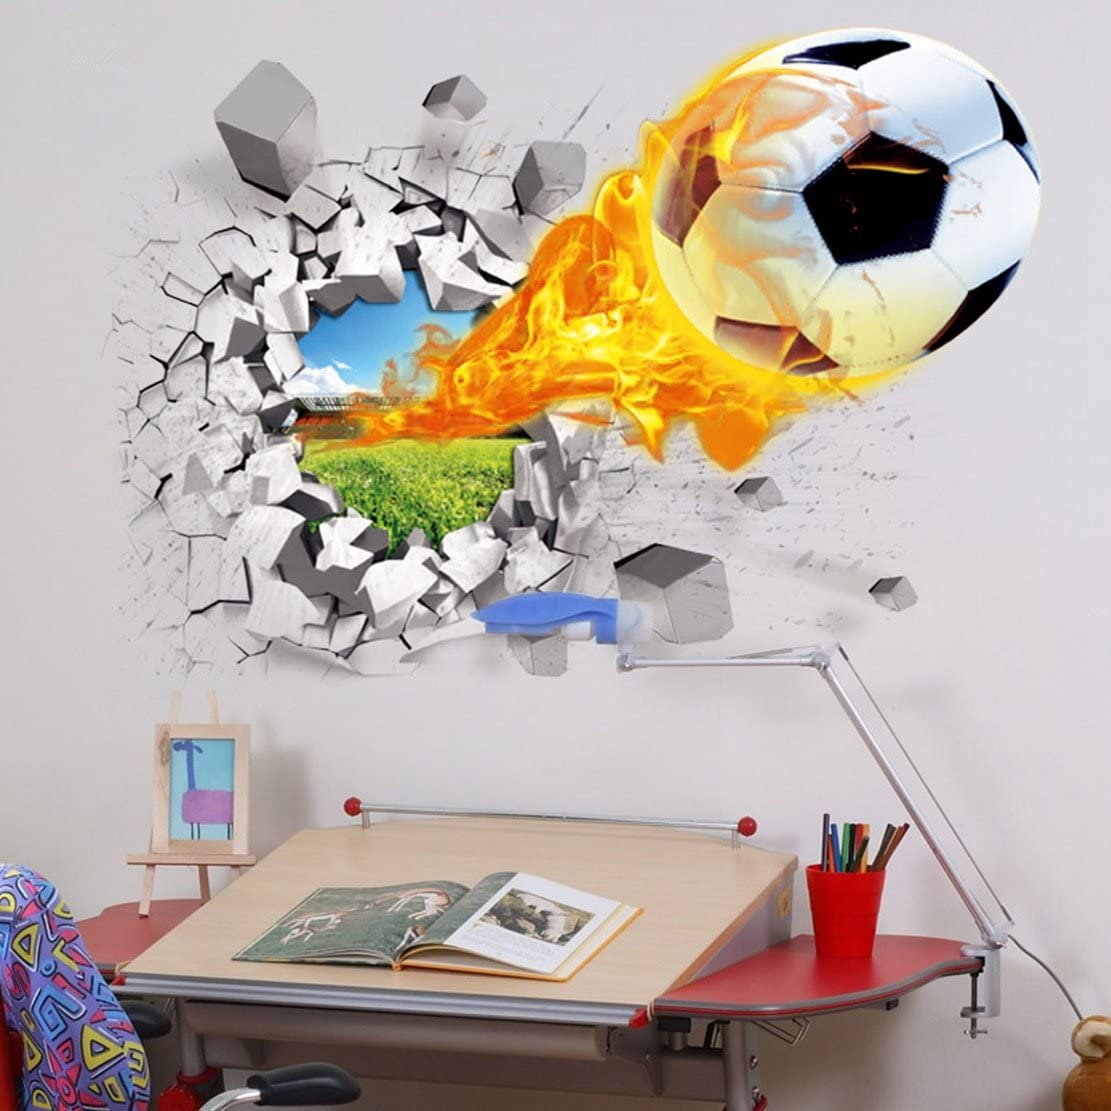 "U-Shark 3D Self-Adhesive Removable Break Through The Wall Vinyl Football Soccer Wall Stickers/Murals Art Decals Decorator as Kids Birthday Gift (Flying Fire Football (19.7"" X 27.6""/ 50 X 70cm))"